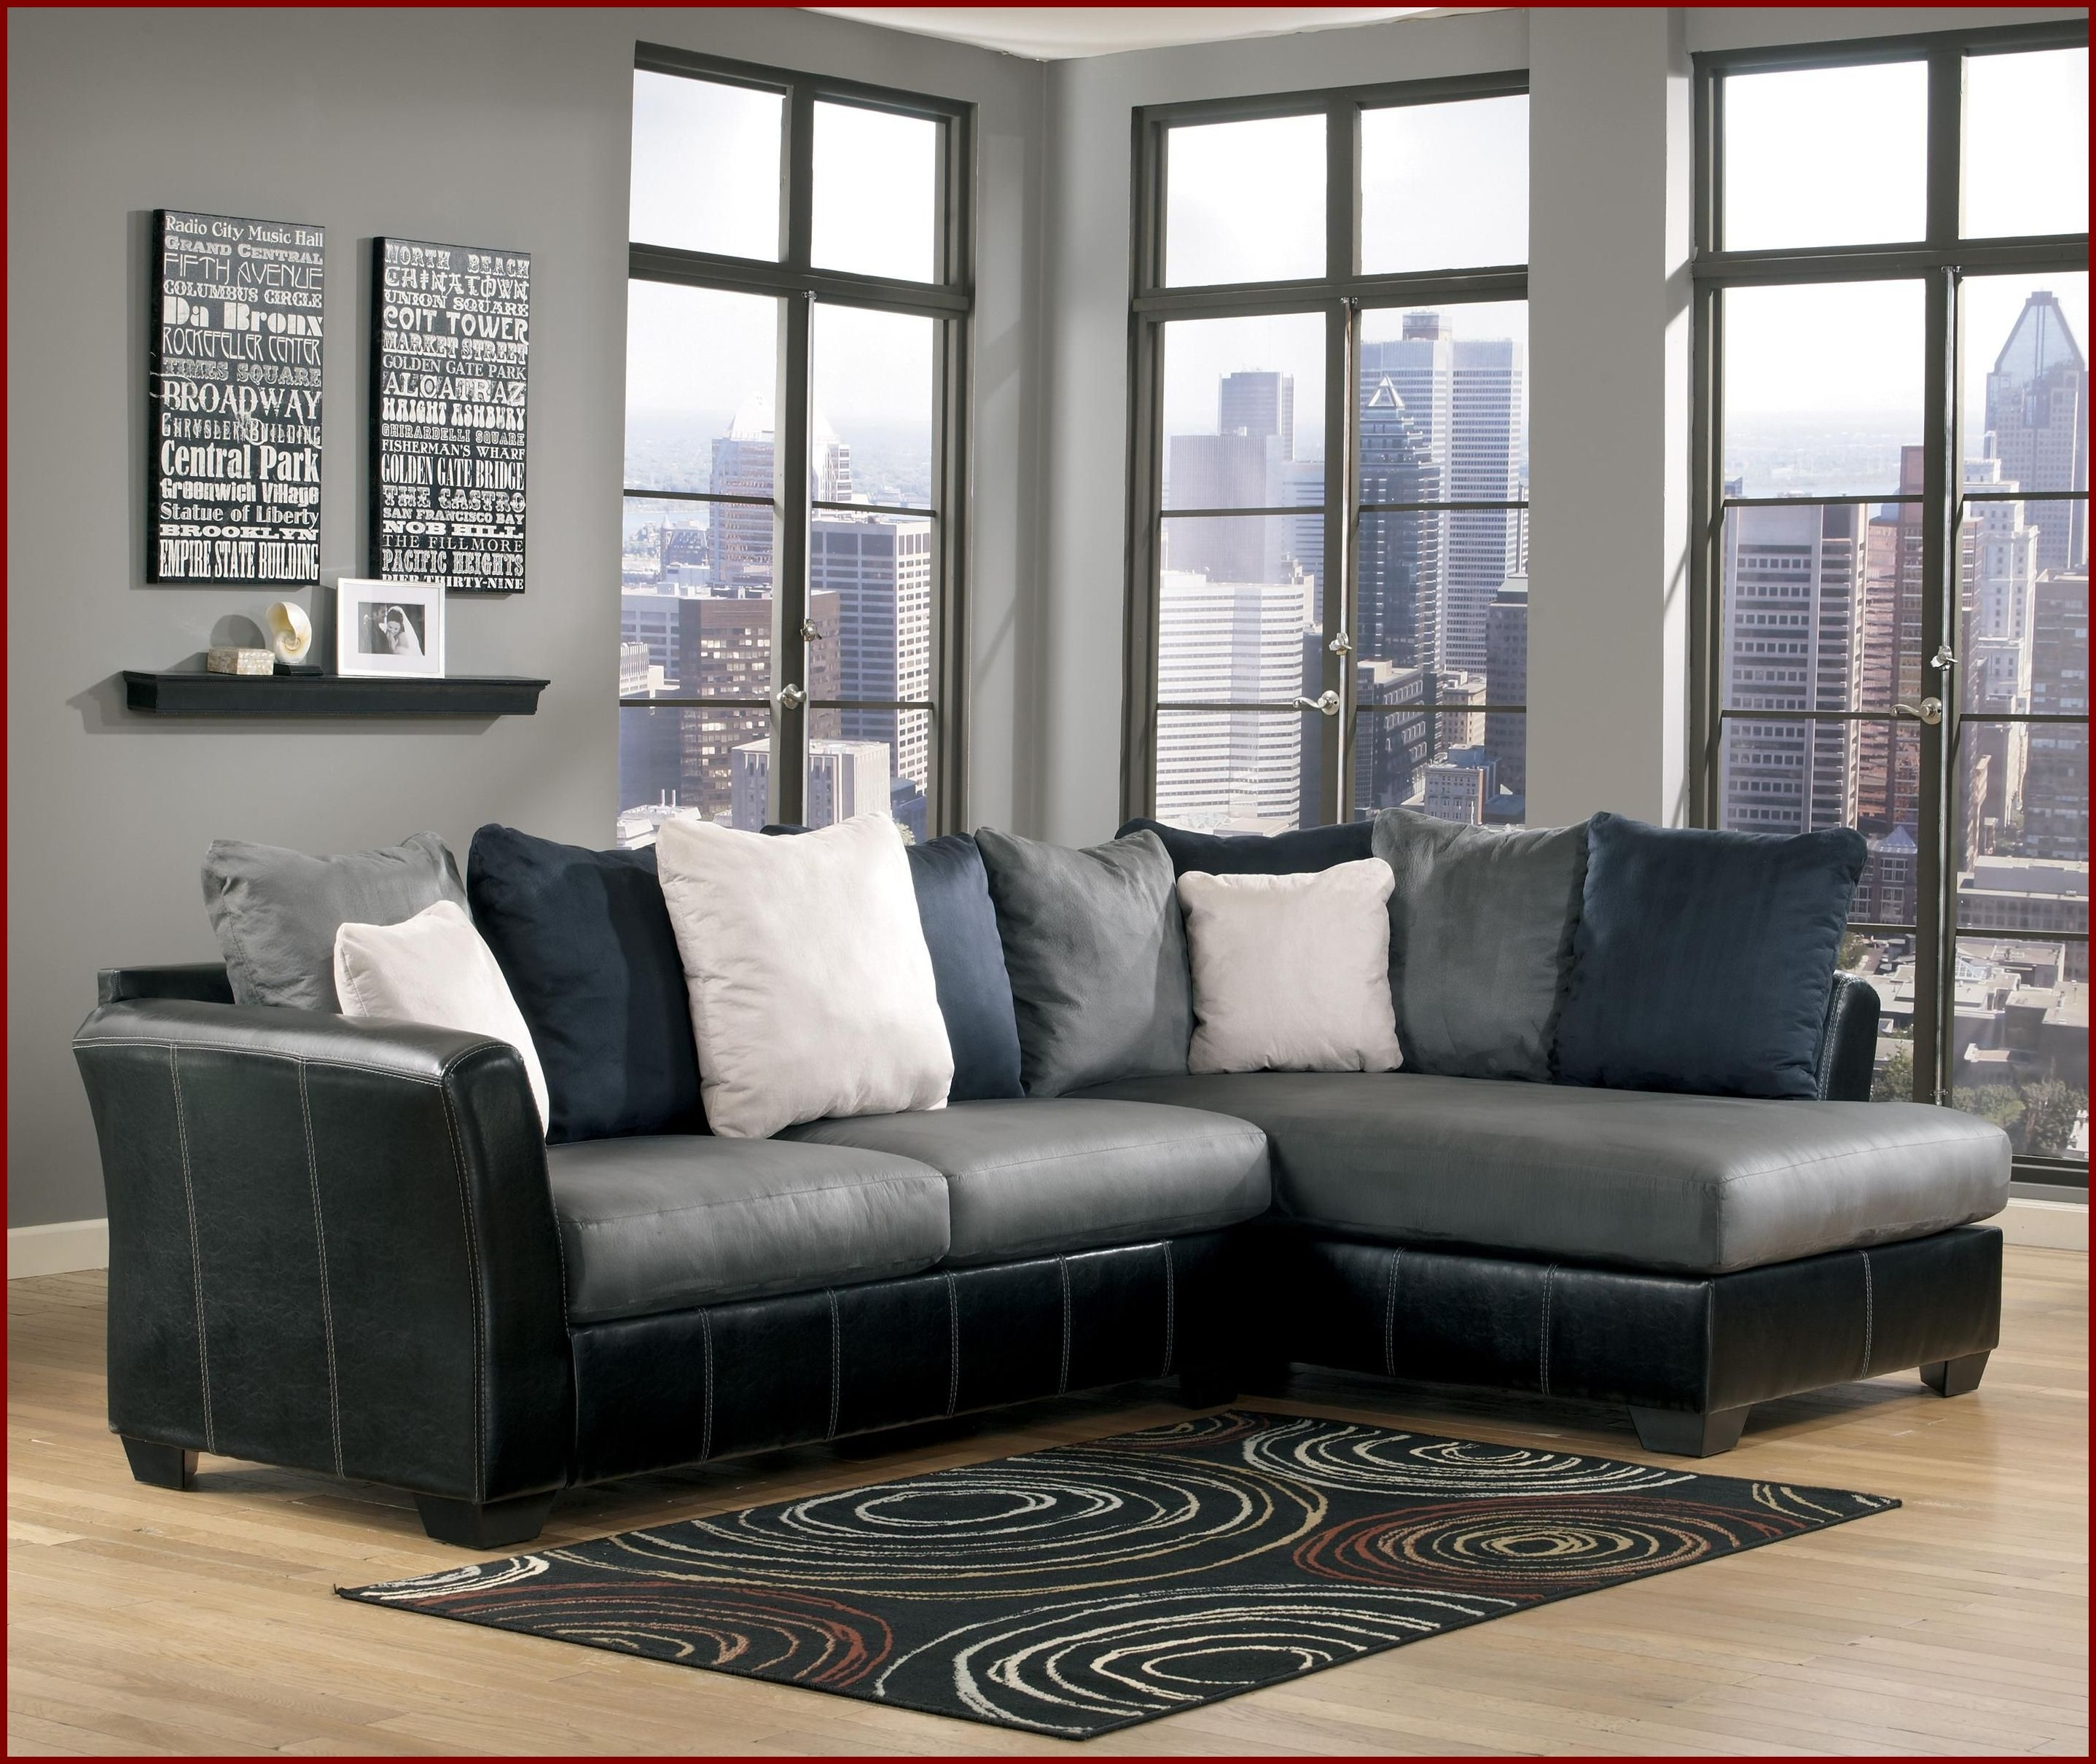 2 Pc Sectional Sofa Chaise | Best Home Furniture Ideas in Delano 2 Piece Sectionals With Raf Oversized Chaise